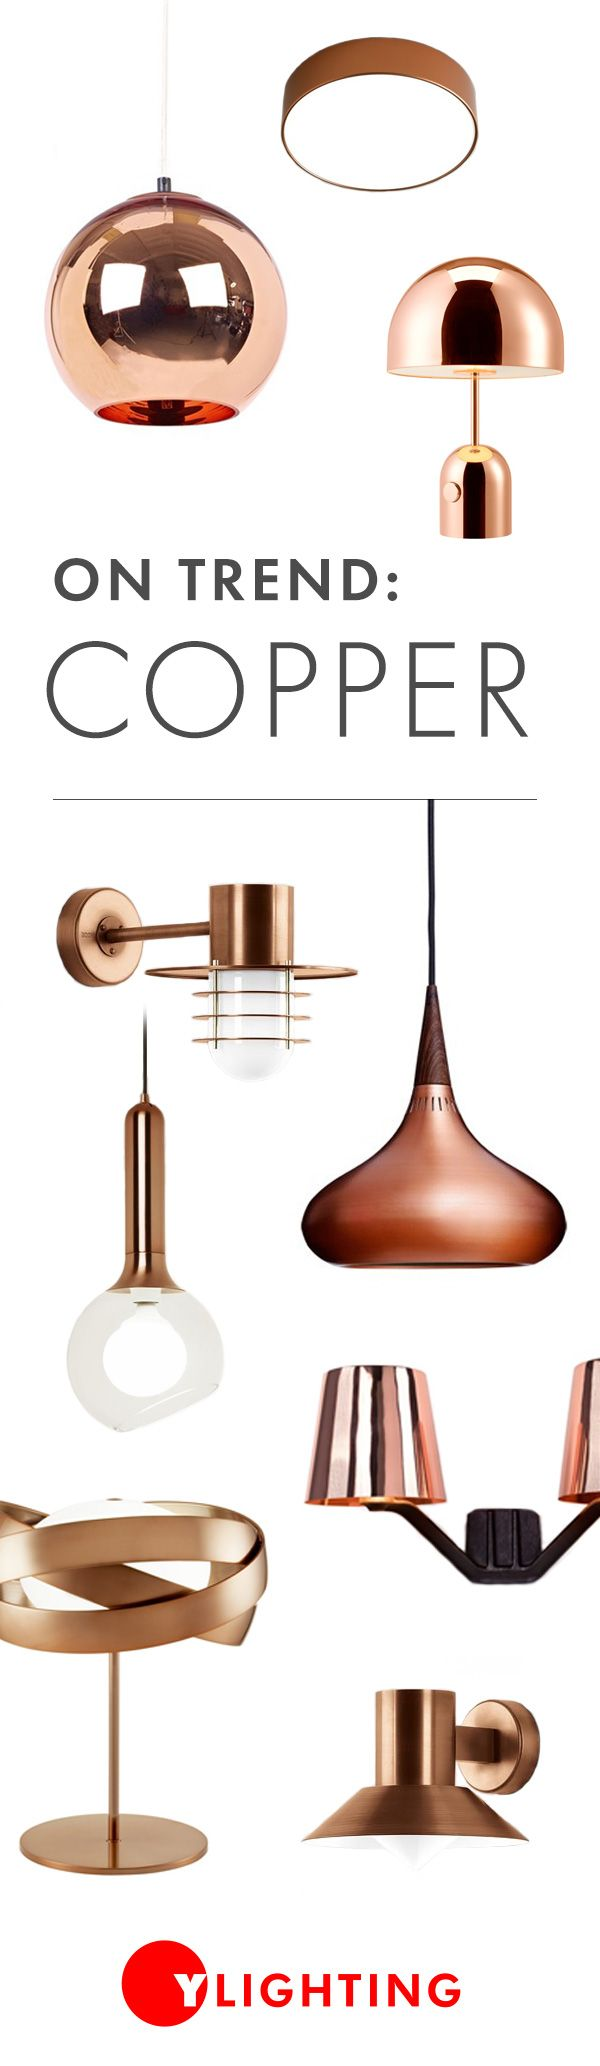 Copper has been trending all year, and now's the time to add the heat and warmth of copper's earthy tone to your modern space. http://www.ylighting.com/search/?No=0&Nrpp=48&Ntt=copper